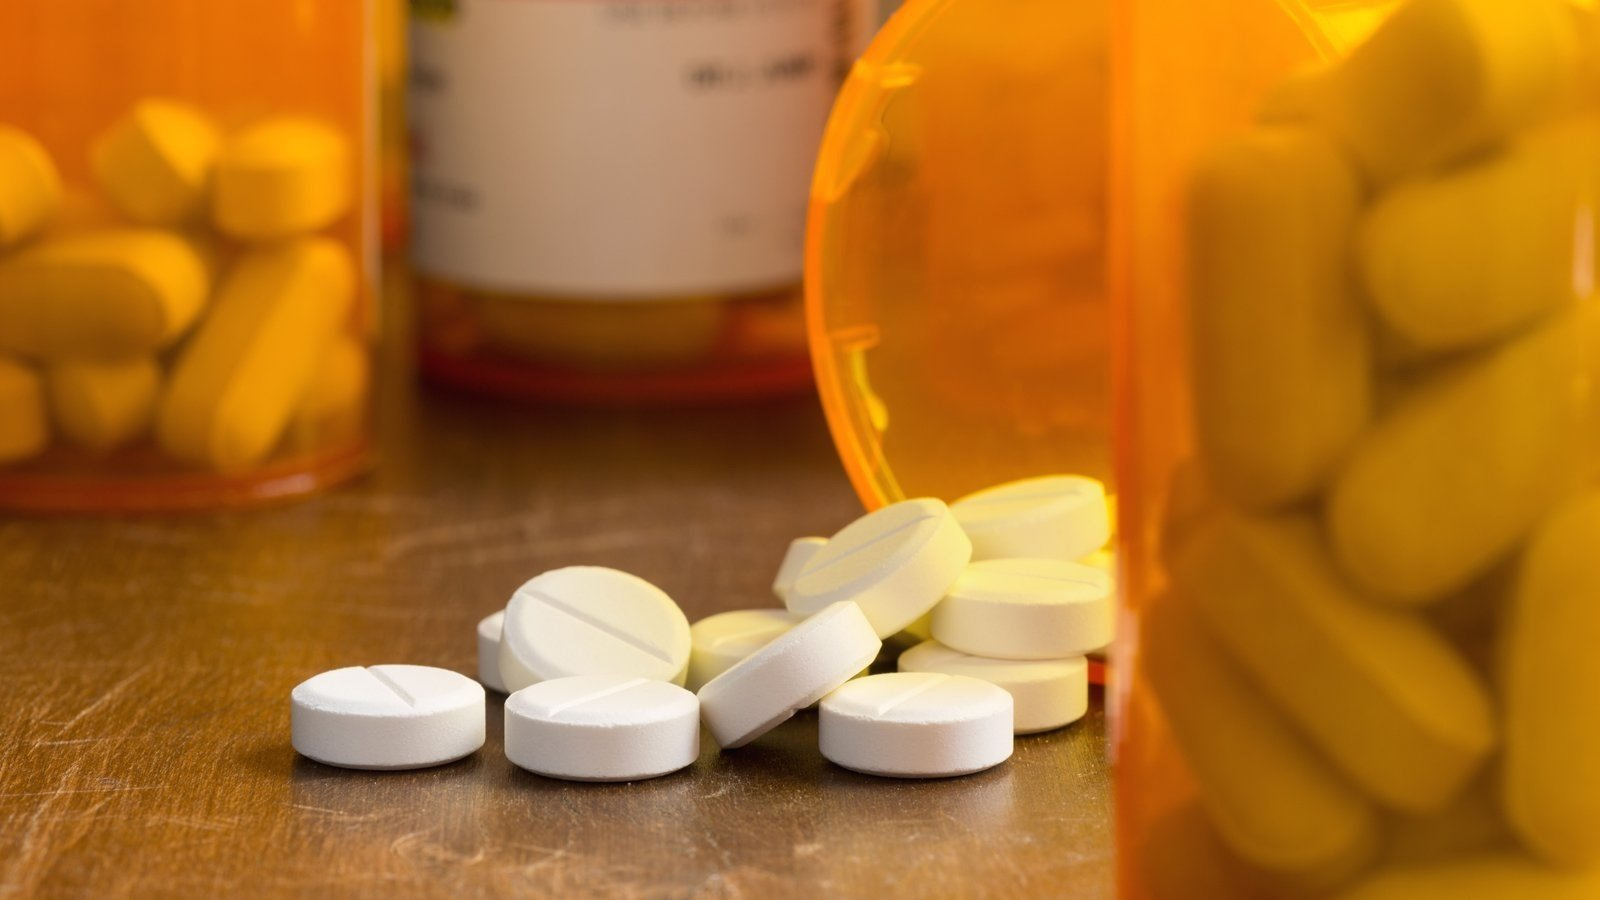 FDA Updates Labeling for Opioid-Containing Medications to Limit Use in Children